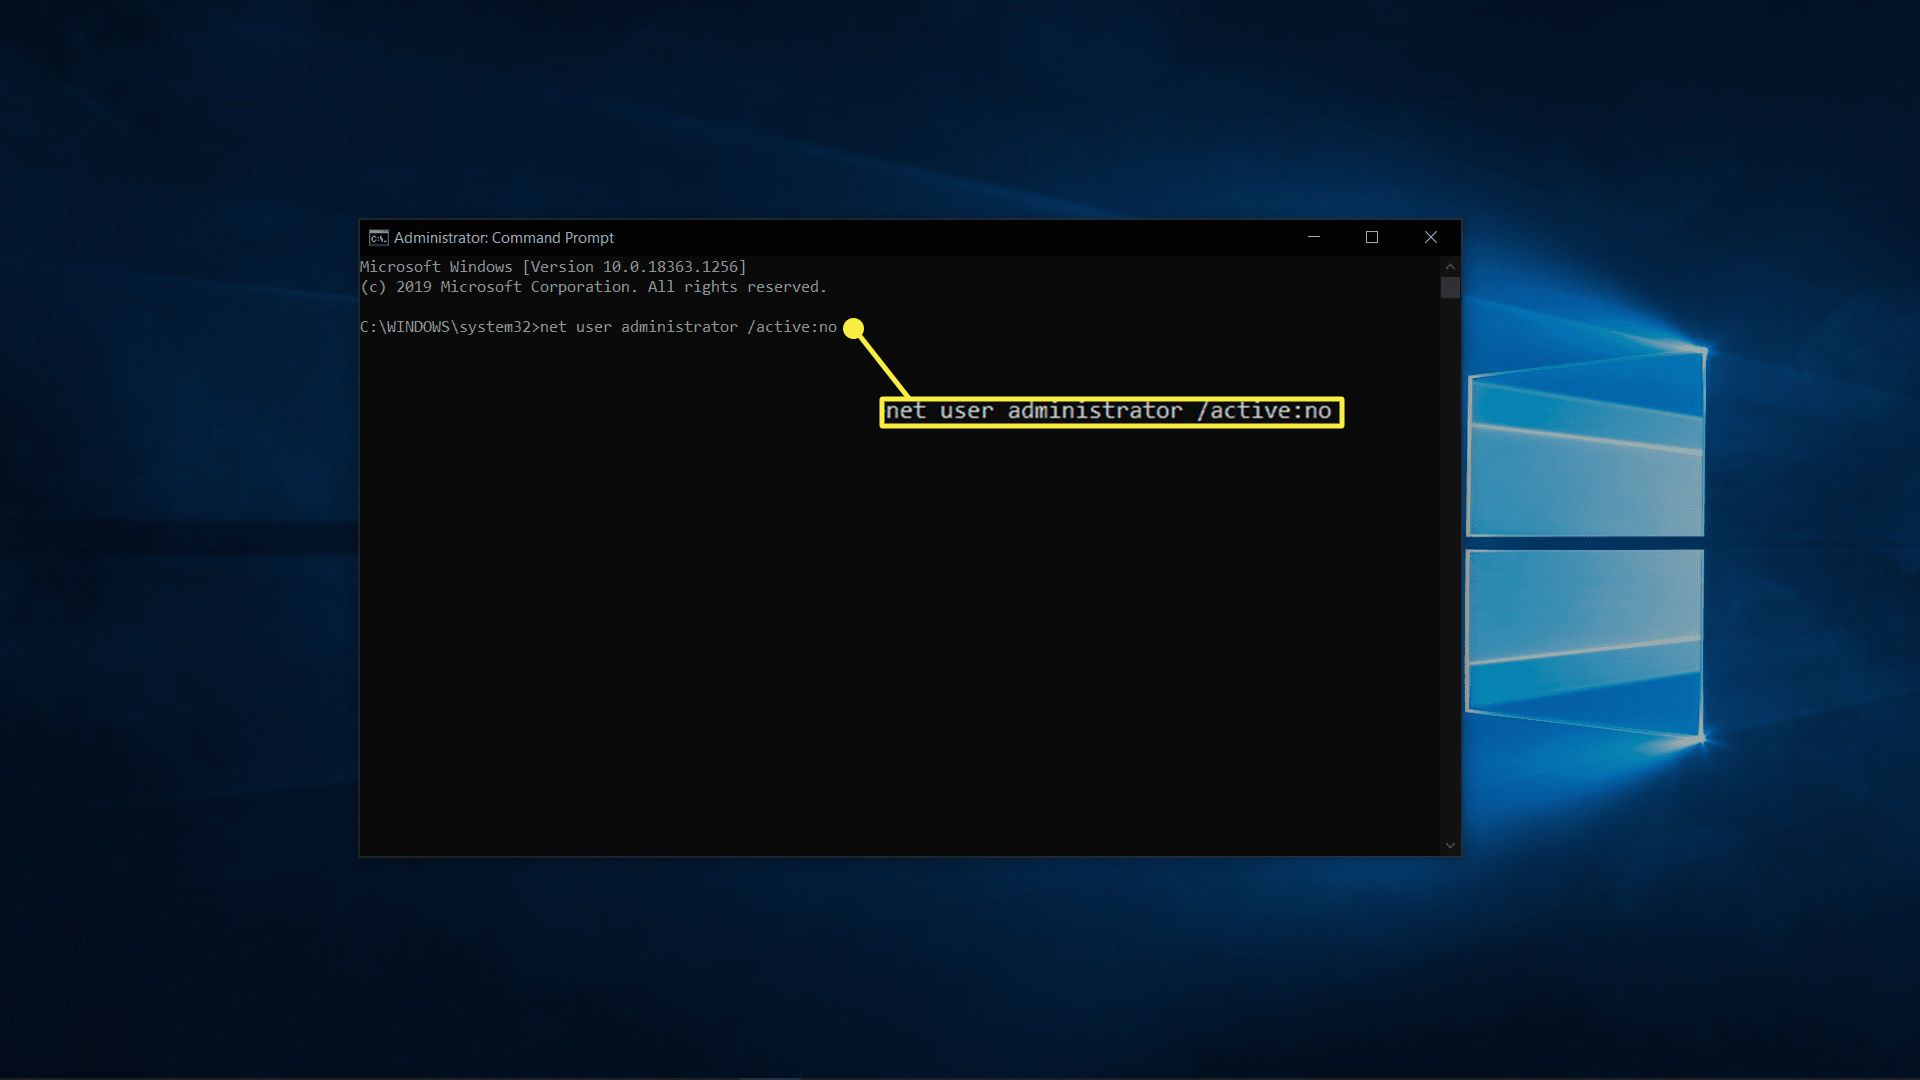 Disabling the admin account in Windows 10.